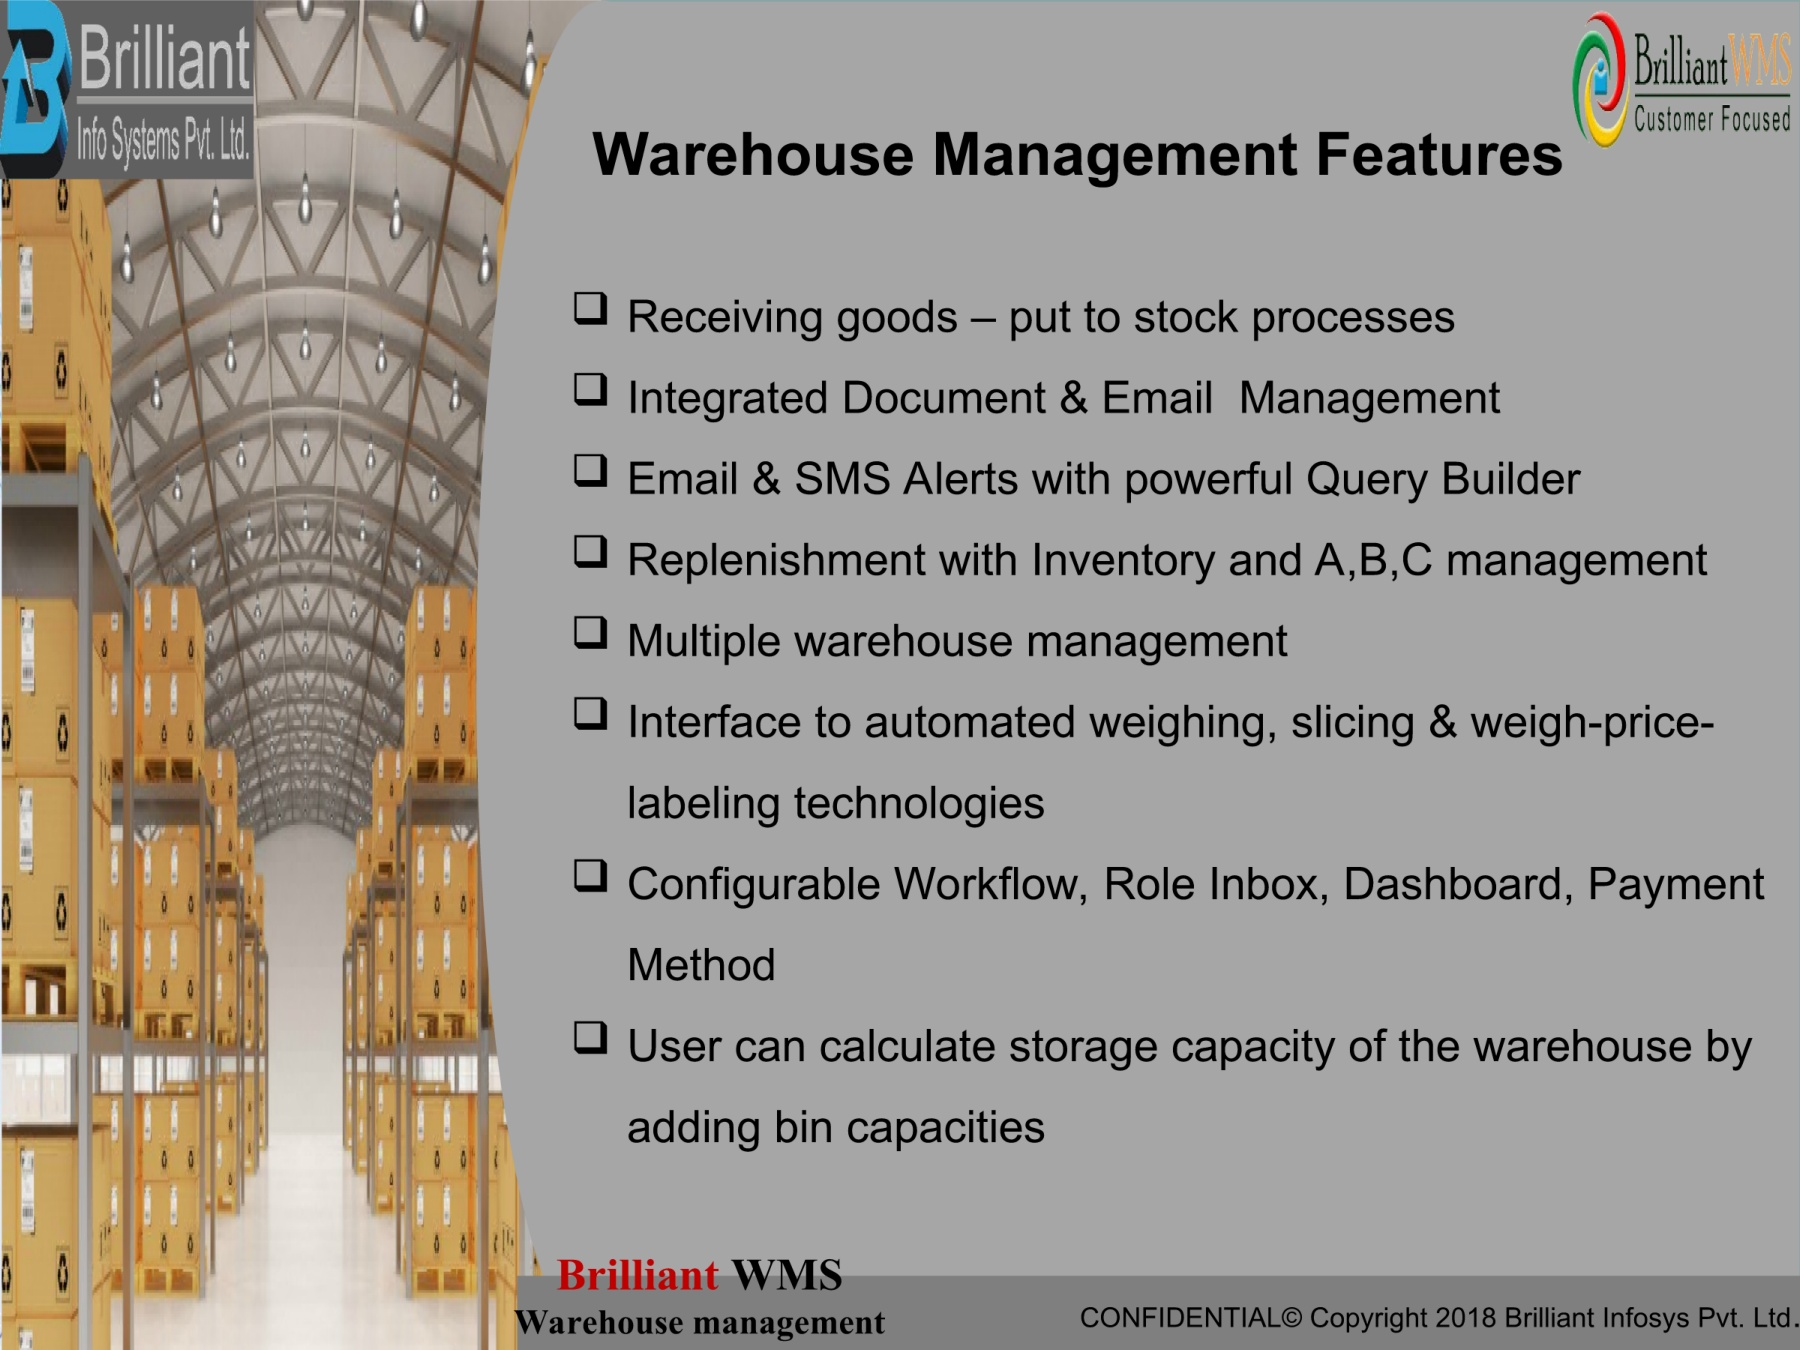 barcode scanning system for a warehouse Pages 1 - 8 - Text Version